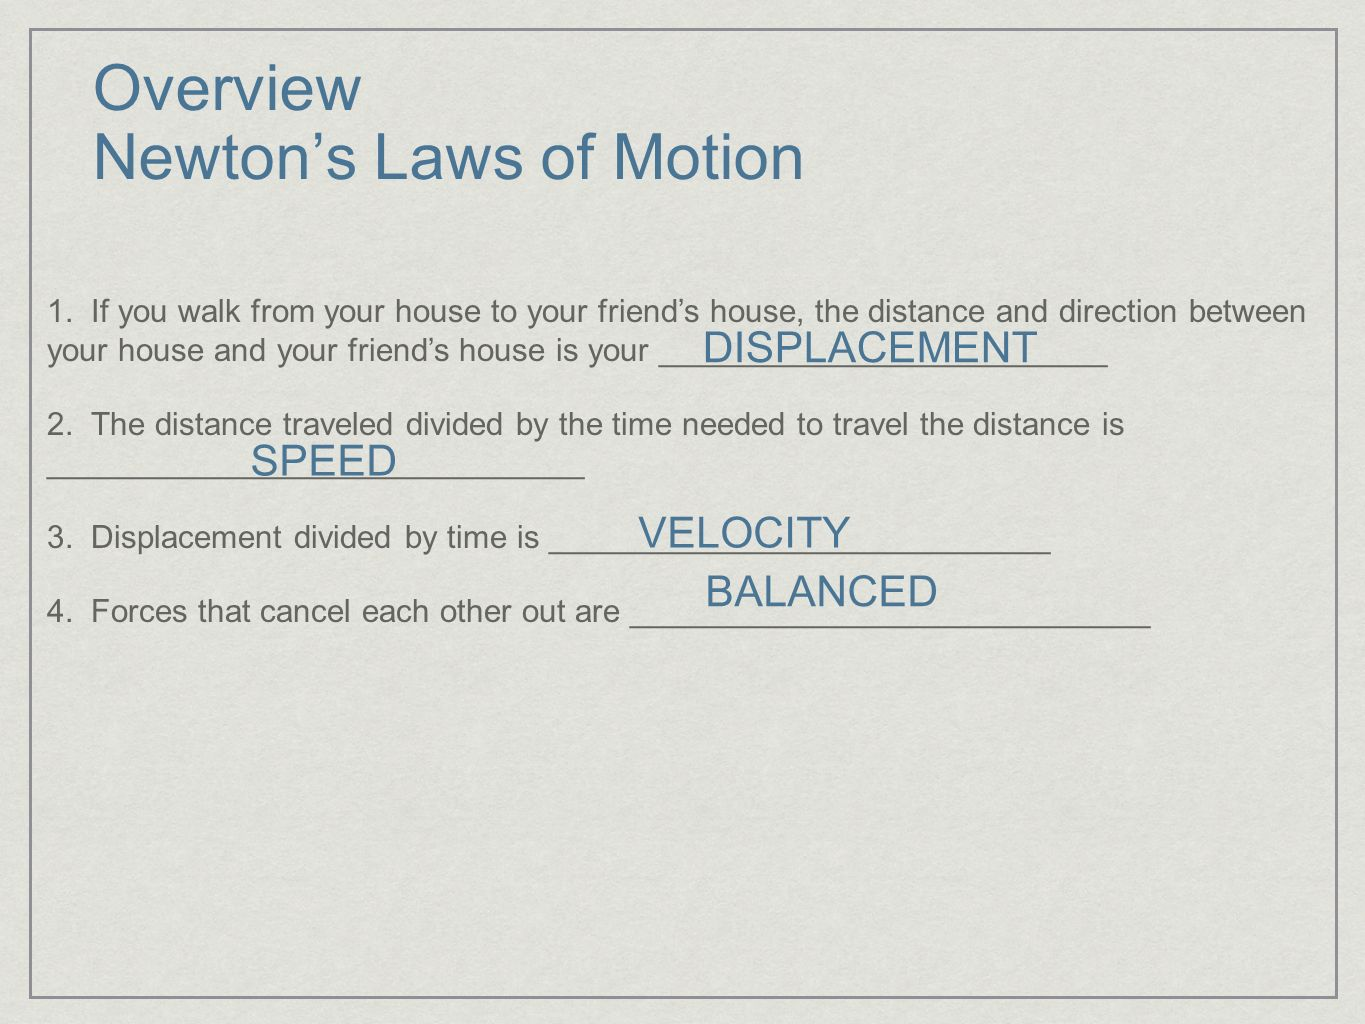 Overview Newton's Laws of Motion